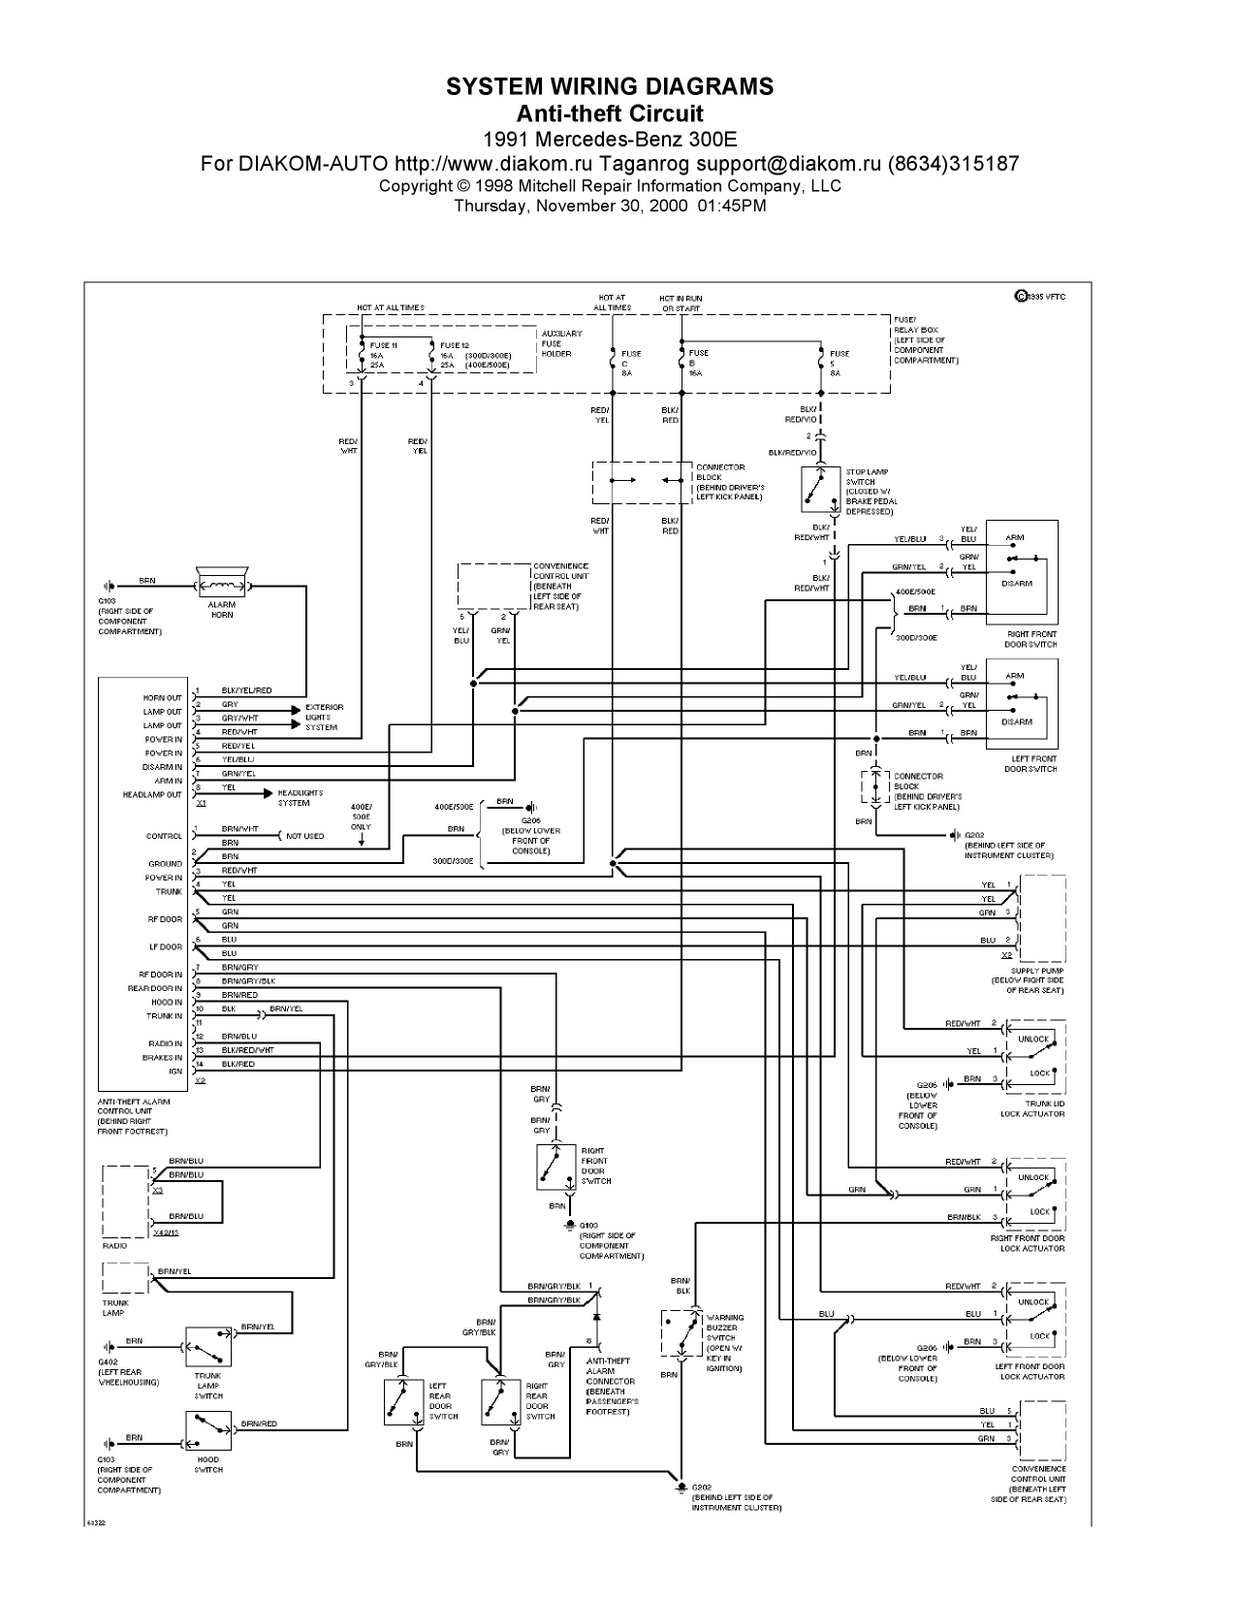 mercedes 190d wiring diagram wiring diagram201 mercedes benz wiring diagram wiring diagrams scwmercedes benz power window wiring diagram online wiring diagram